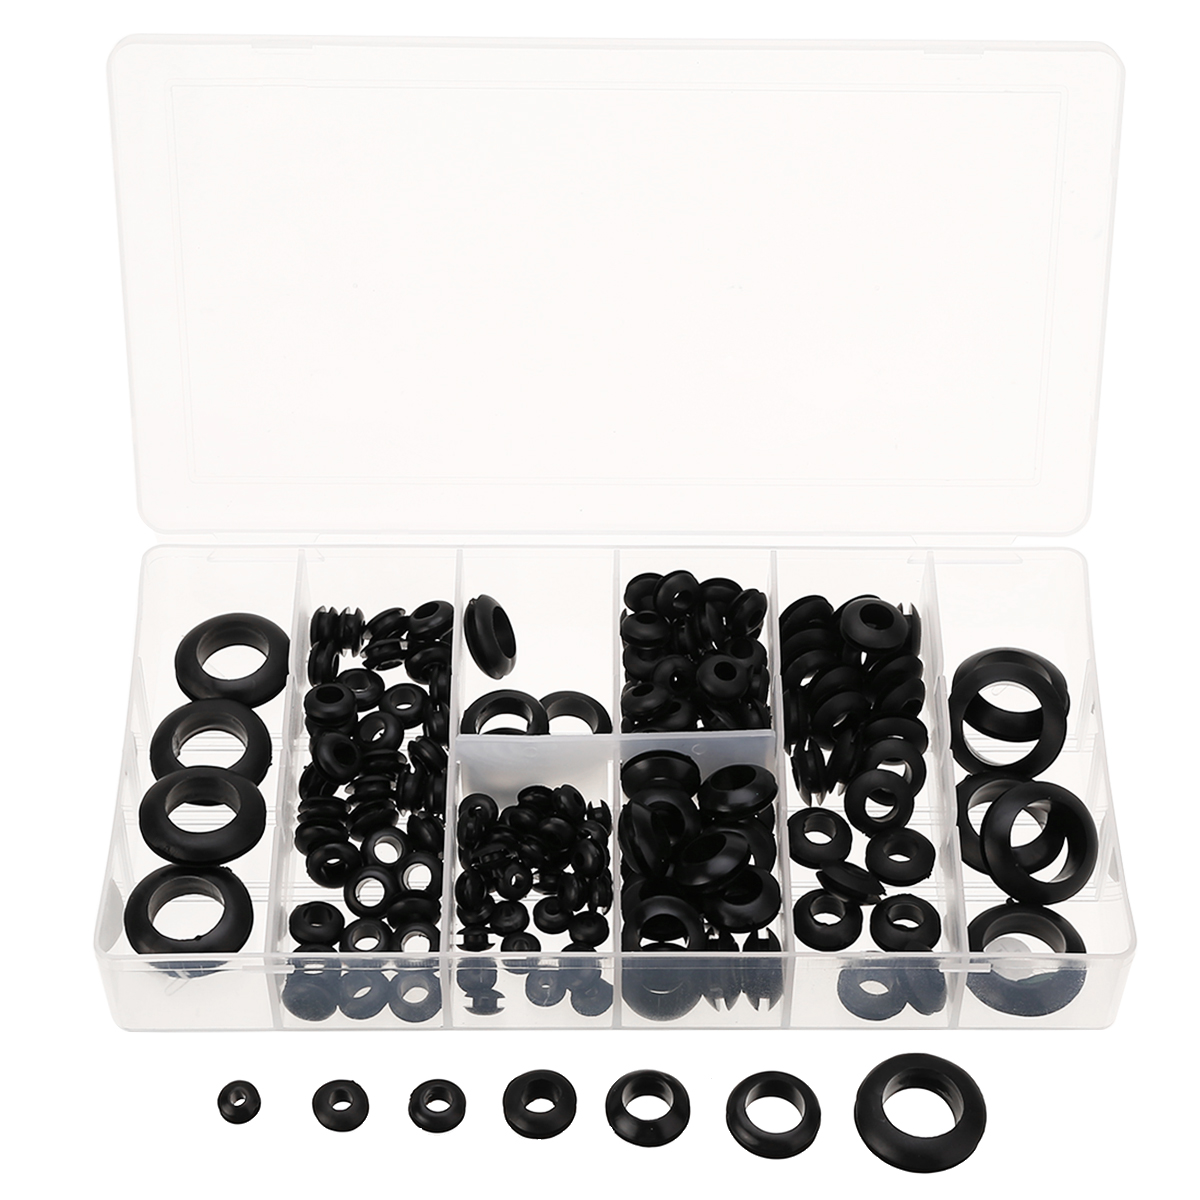 180pcs/lot Rubber Grommets Sets Black Retaining Ring Set Blanking Hole Wiring Cable Gasket Seal Assortment Set 100pcs 3 4 5 6 7 8 10 12 14 16 18 20mm inner diameter cable wiring rubber grommets gasket ring wire protective loop black white